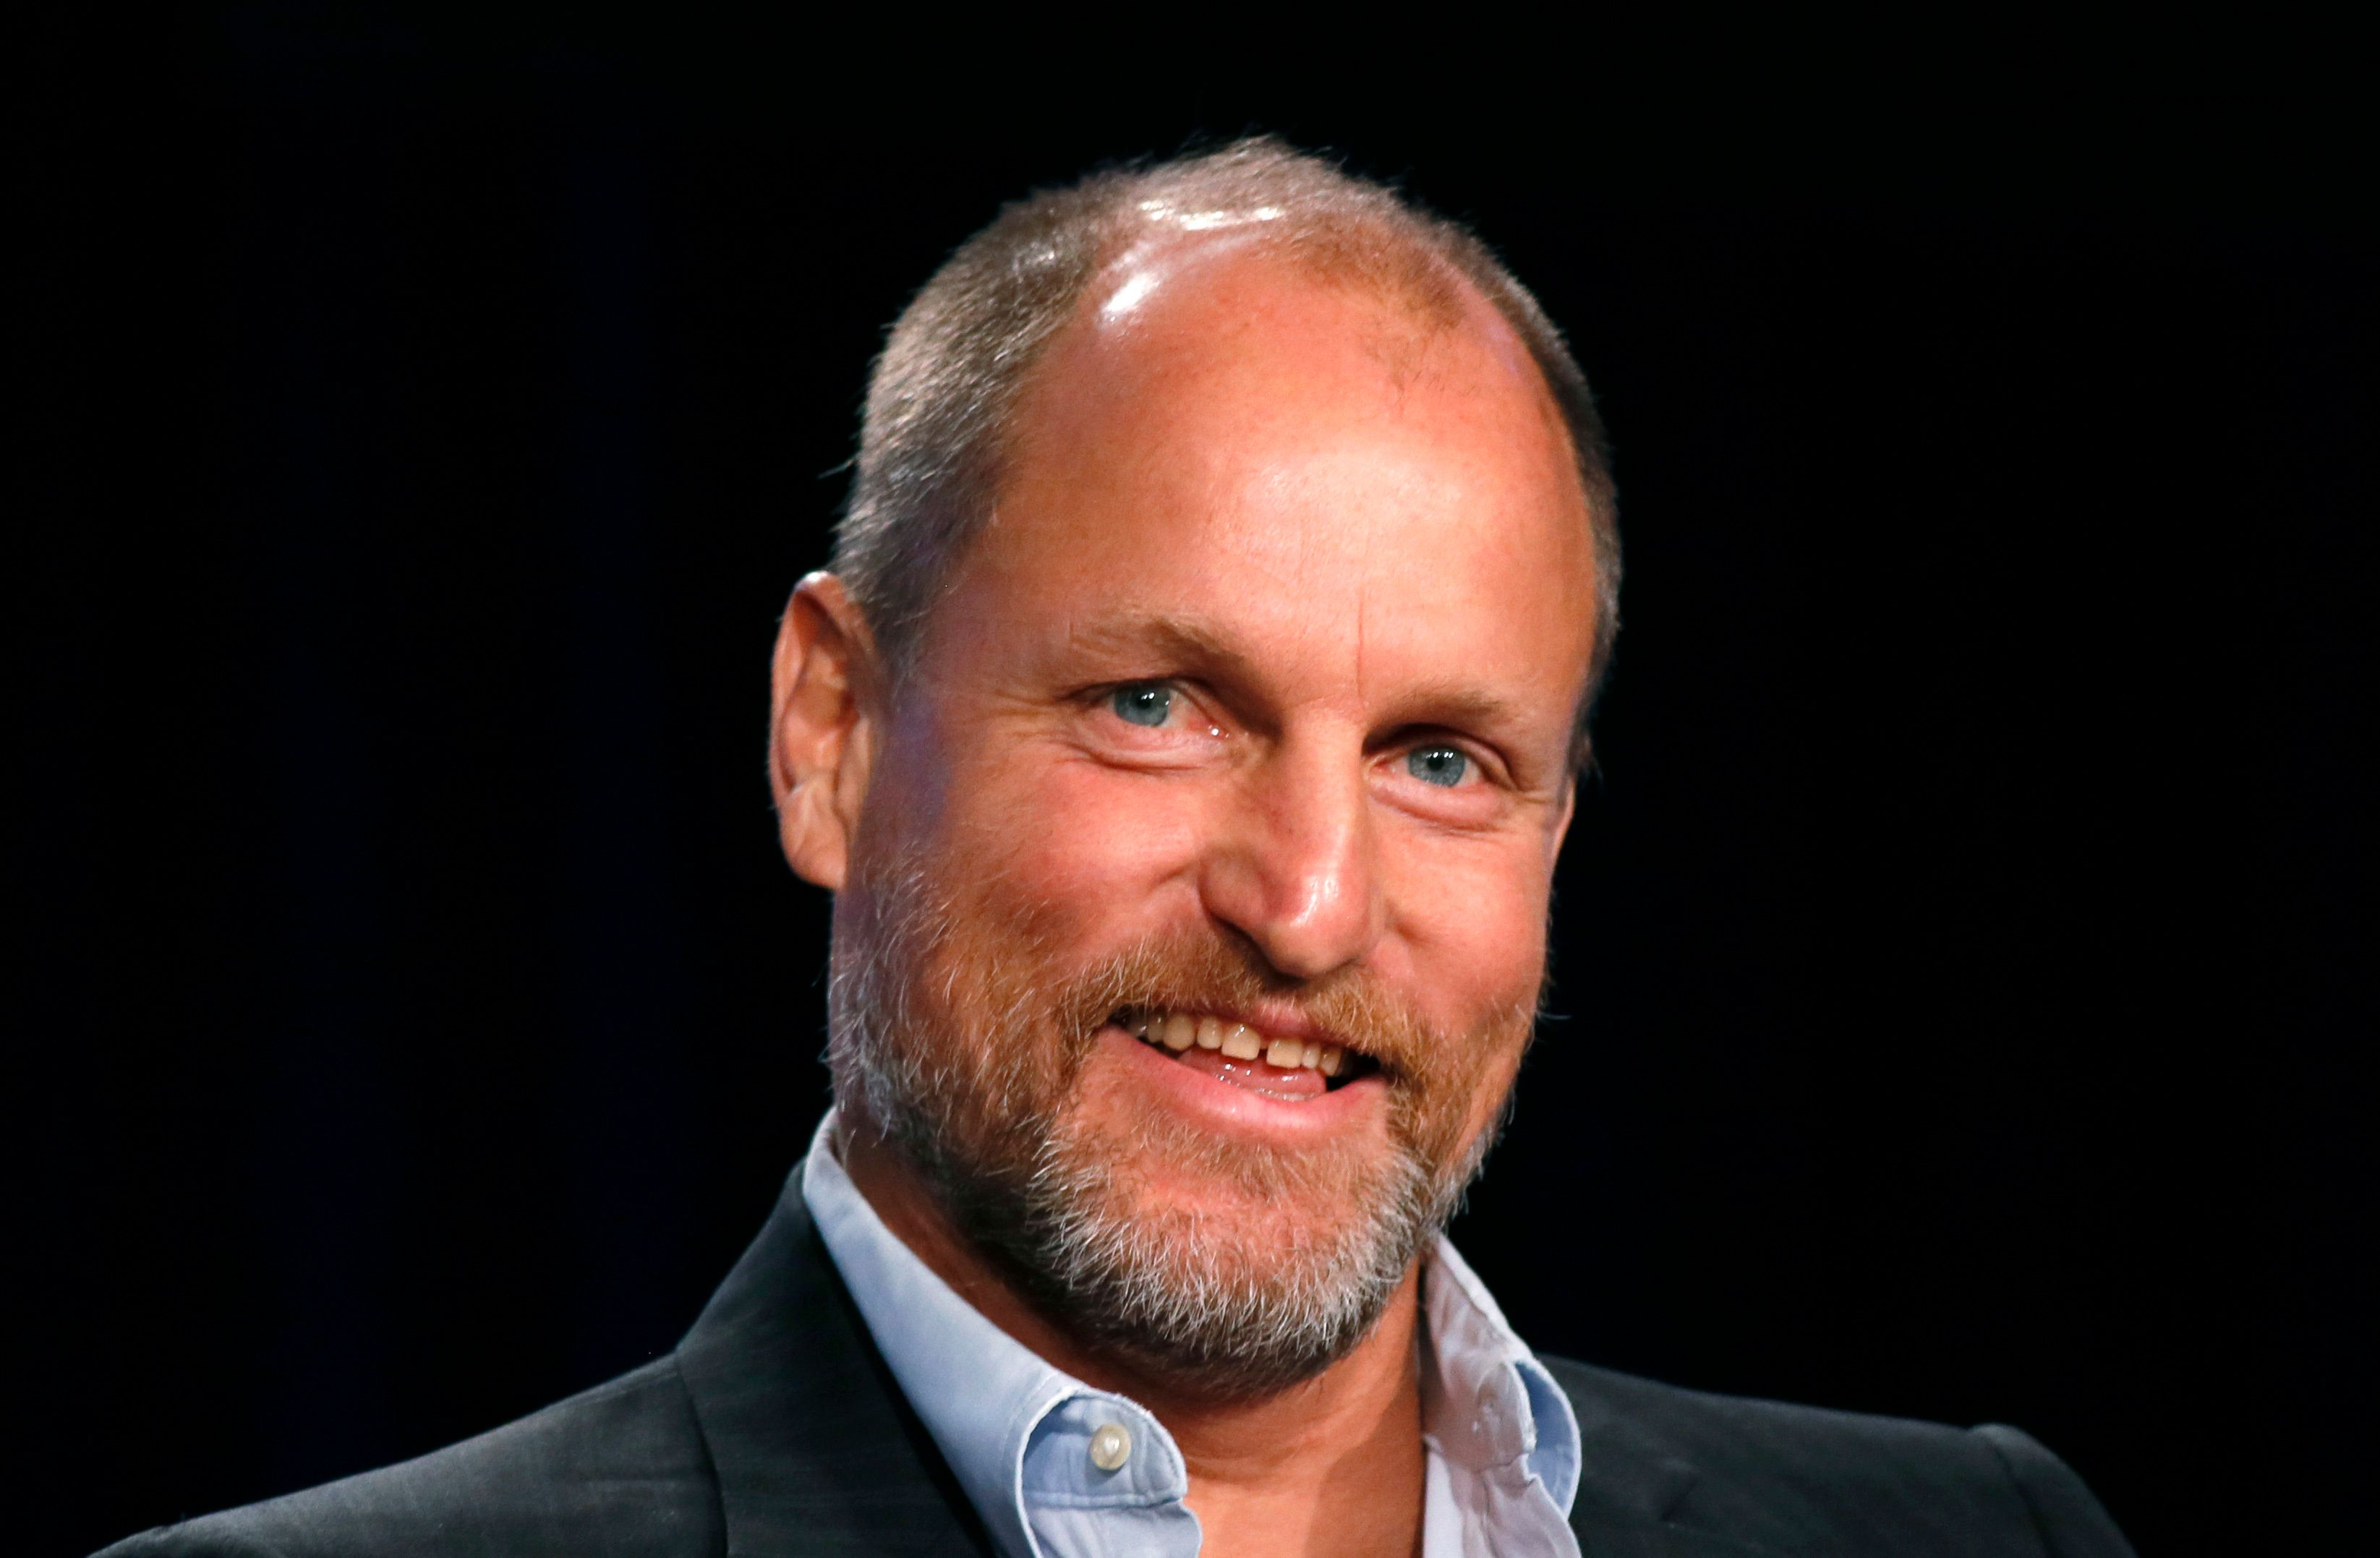 Woody Harrelson might be a party animal, but he hasn't smoke weed in about a year.